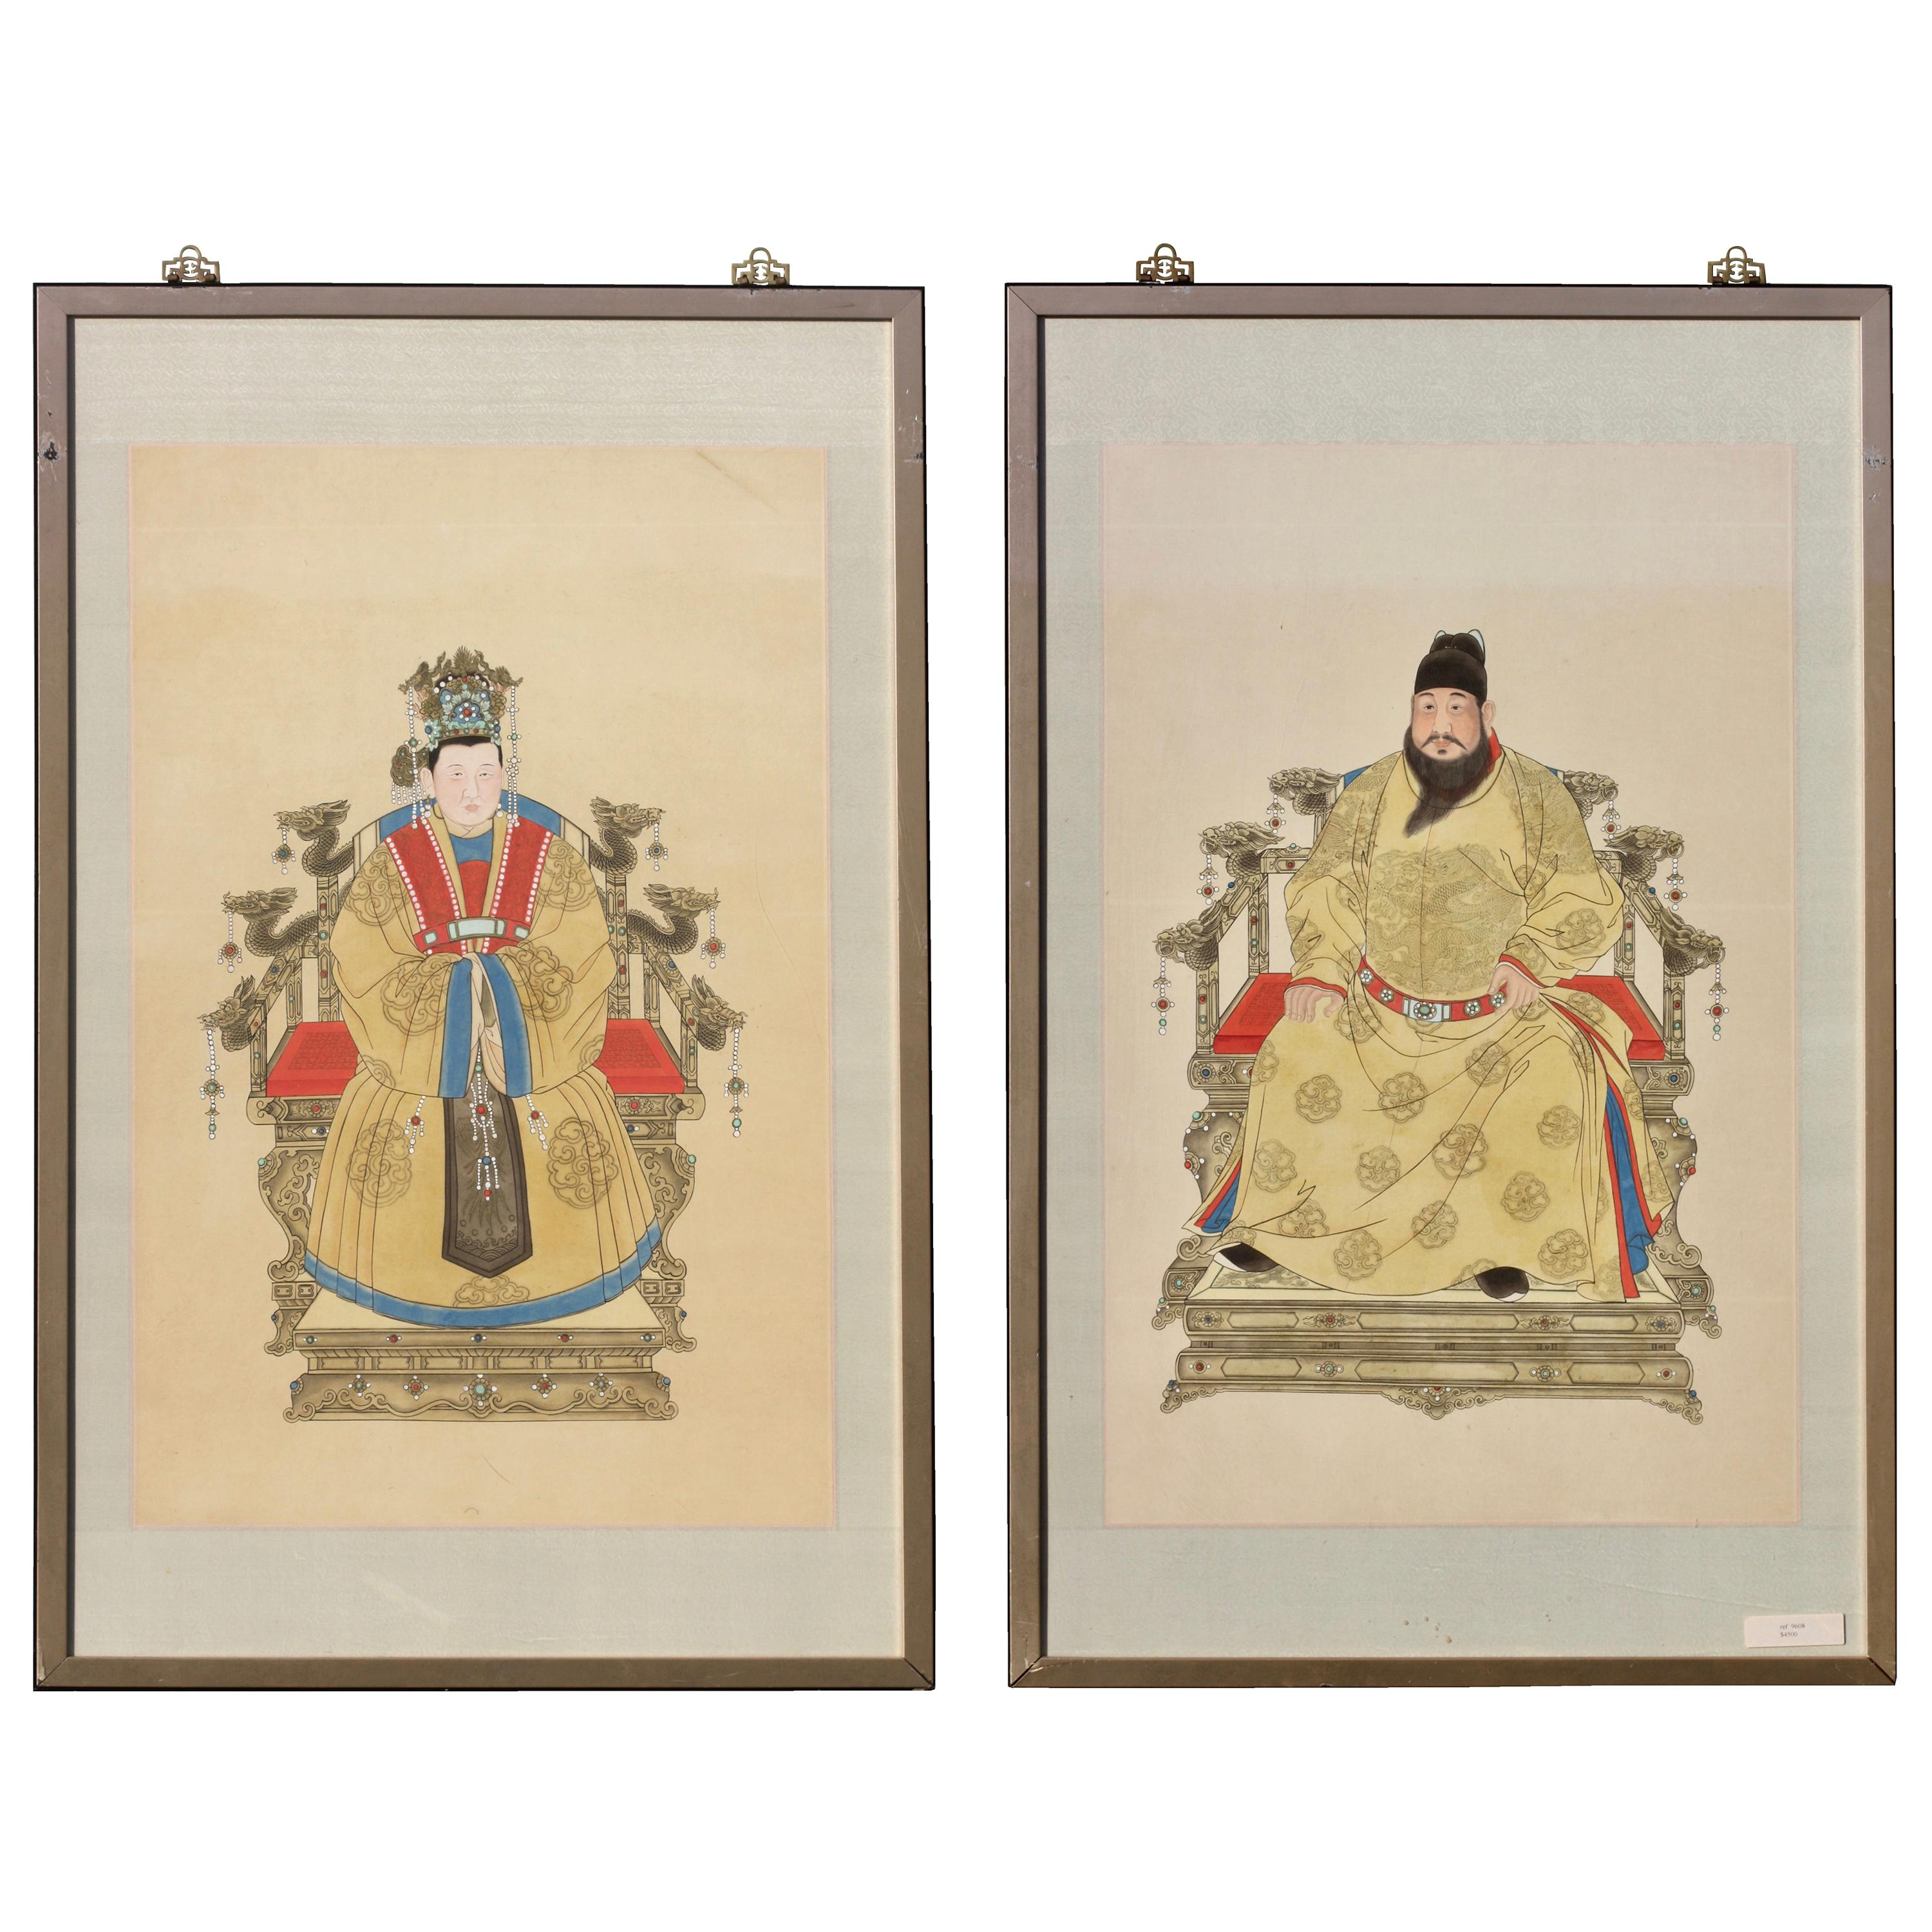 Portraits of a Ming Dynasty Emperor and Empress, Chinese Ink and Color on Paper